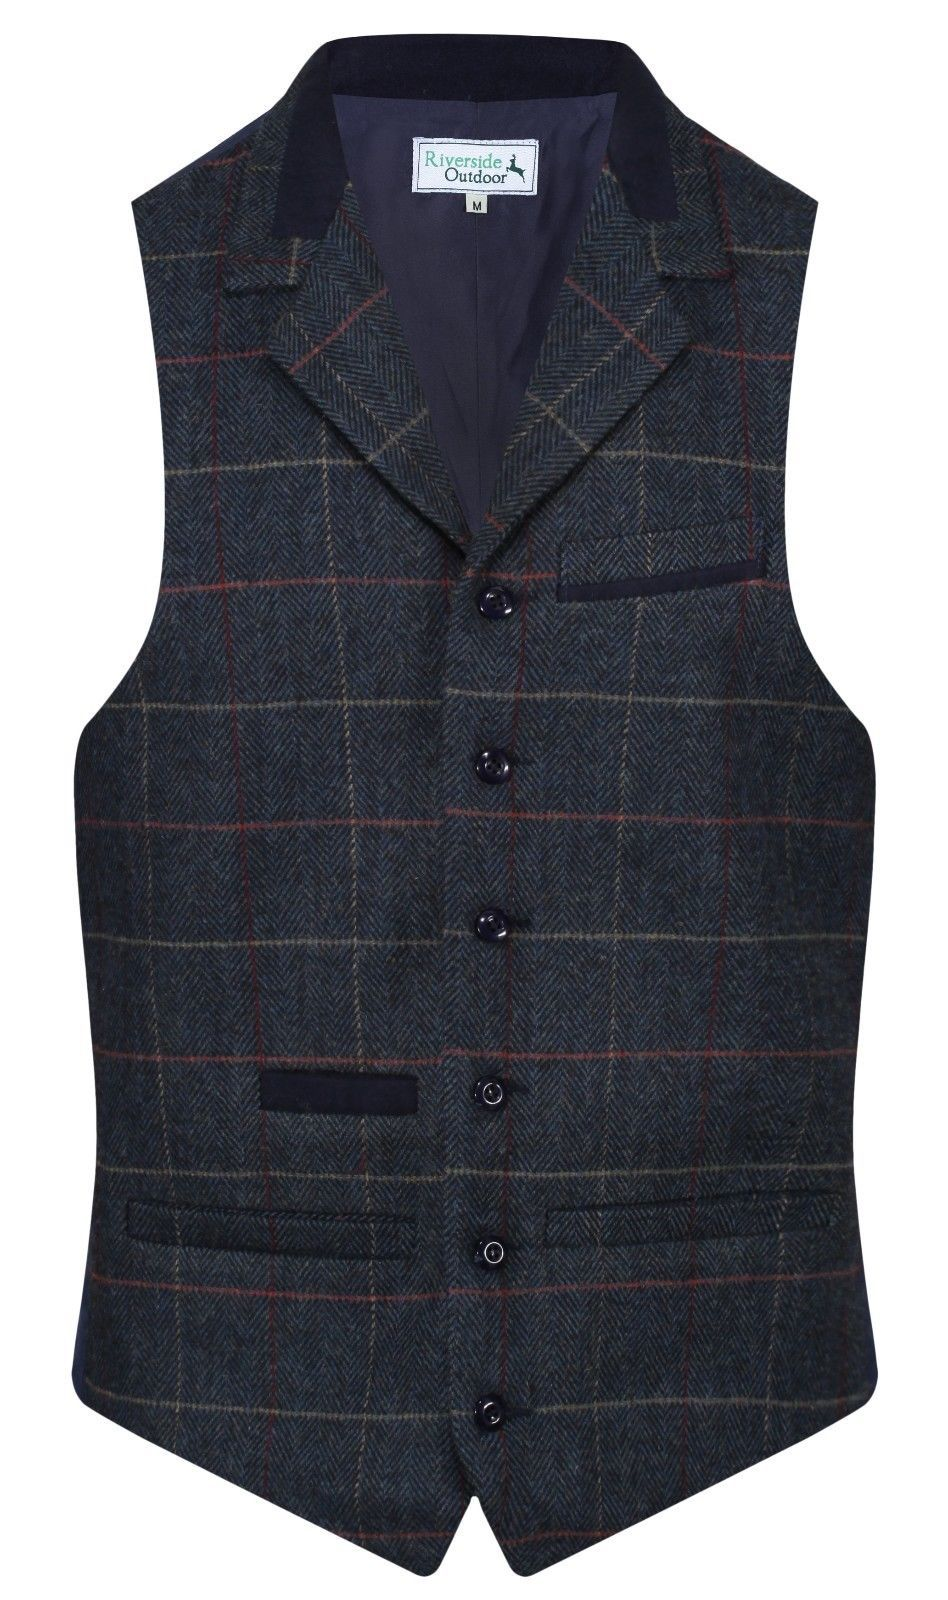 MENS WOOL Balmoral Quality TWEED Check Waistcoat With Collar Royal Navy Blue New